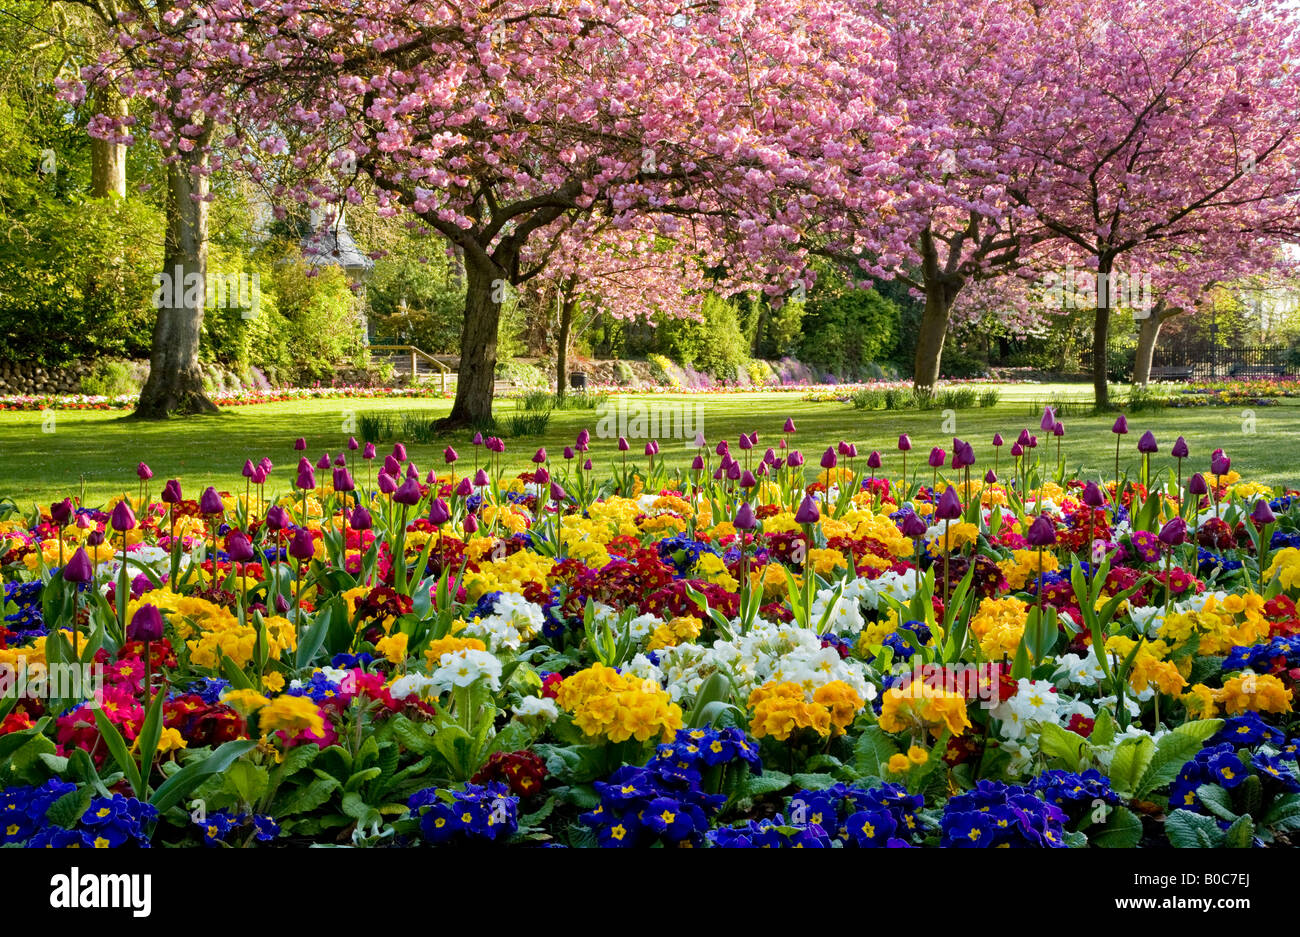 Cherry blossom and tulip stock photos cherry blossom and tulip spring flower beds of tulips and primulas with flowering cherry trees in the town gardens mightylinksfo